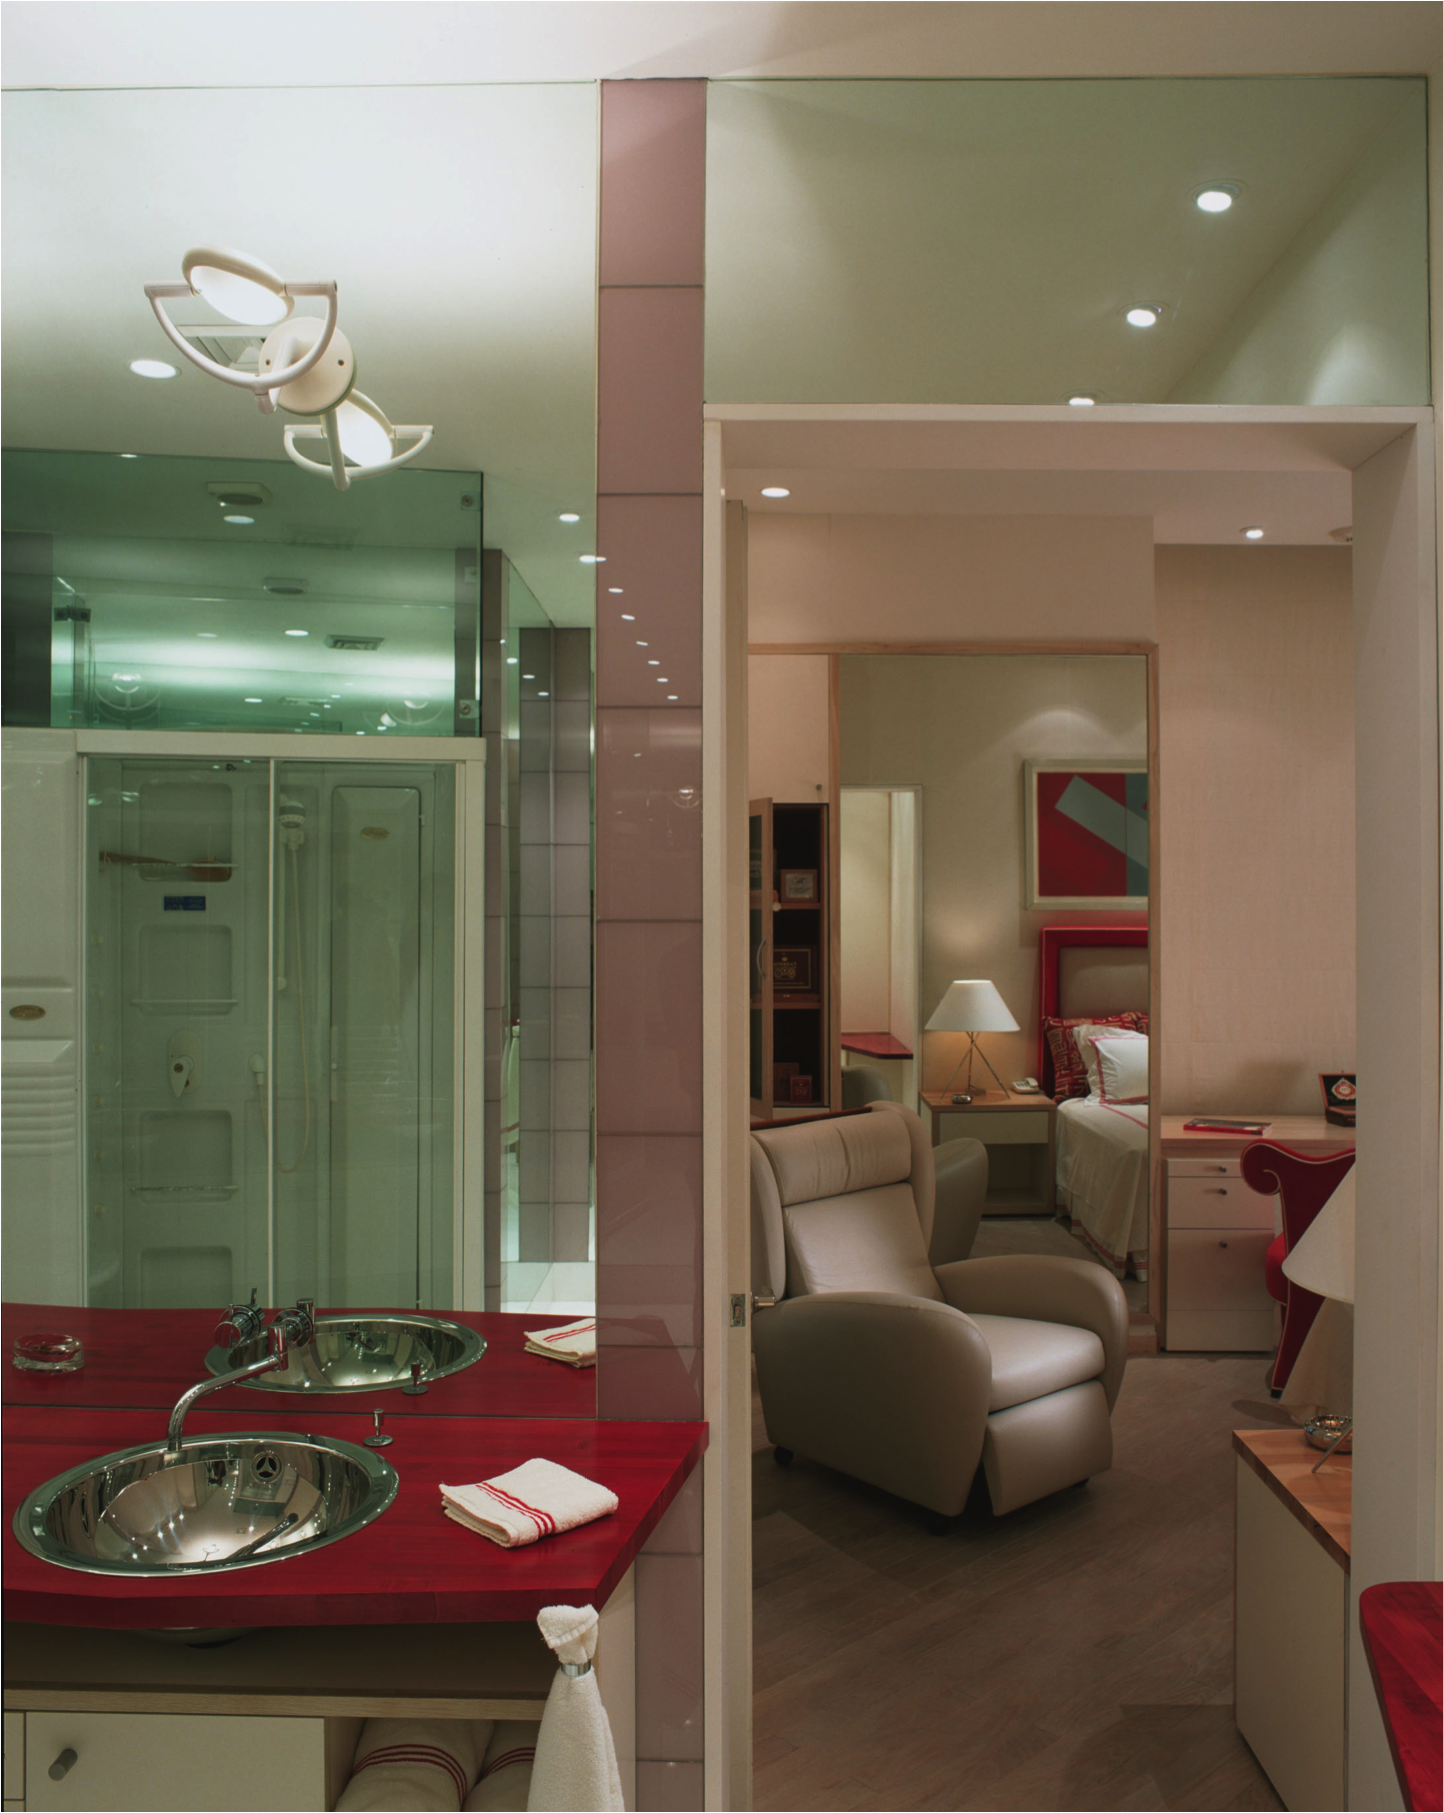 Taken from the doorway between the primary bedroom and the primary bathroom, this photo shows the bright red accents of the primary bedroom filtering into the deep red butcher block countertops of the bathroom vanity. Reflected in the mirror is the whirlpool spa shower stall.